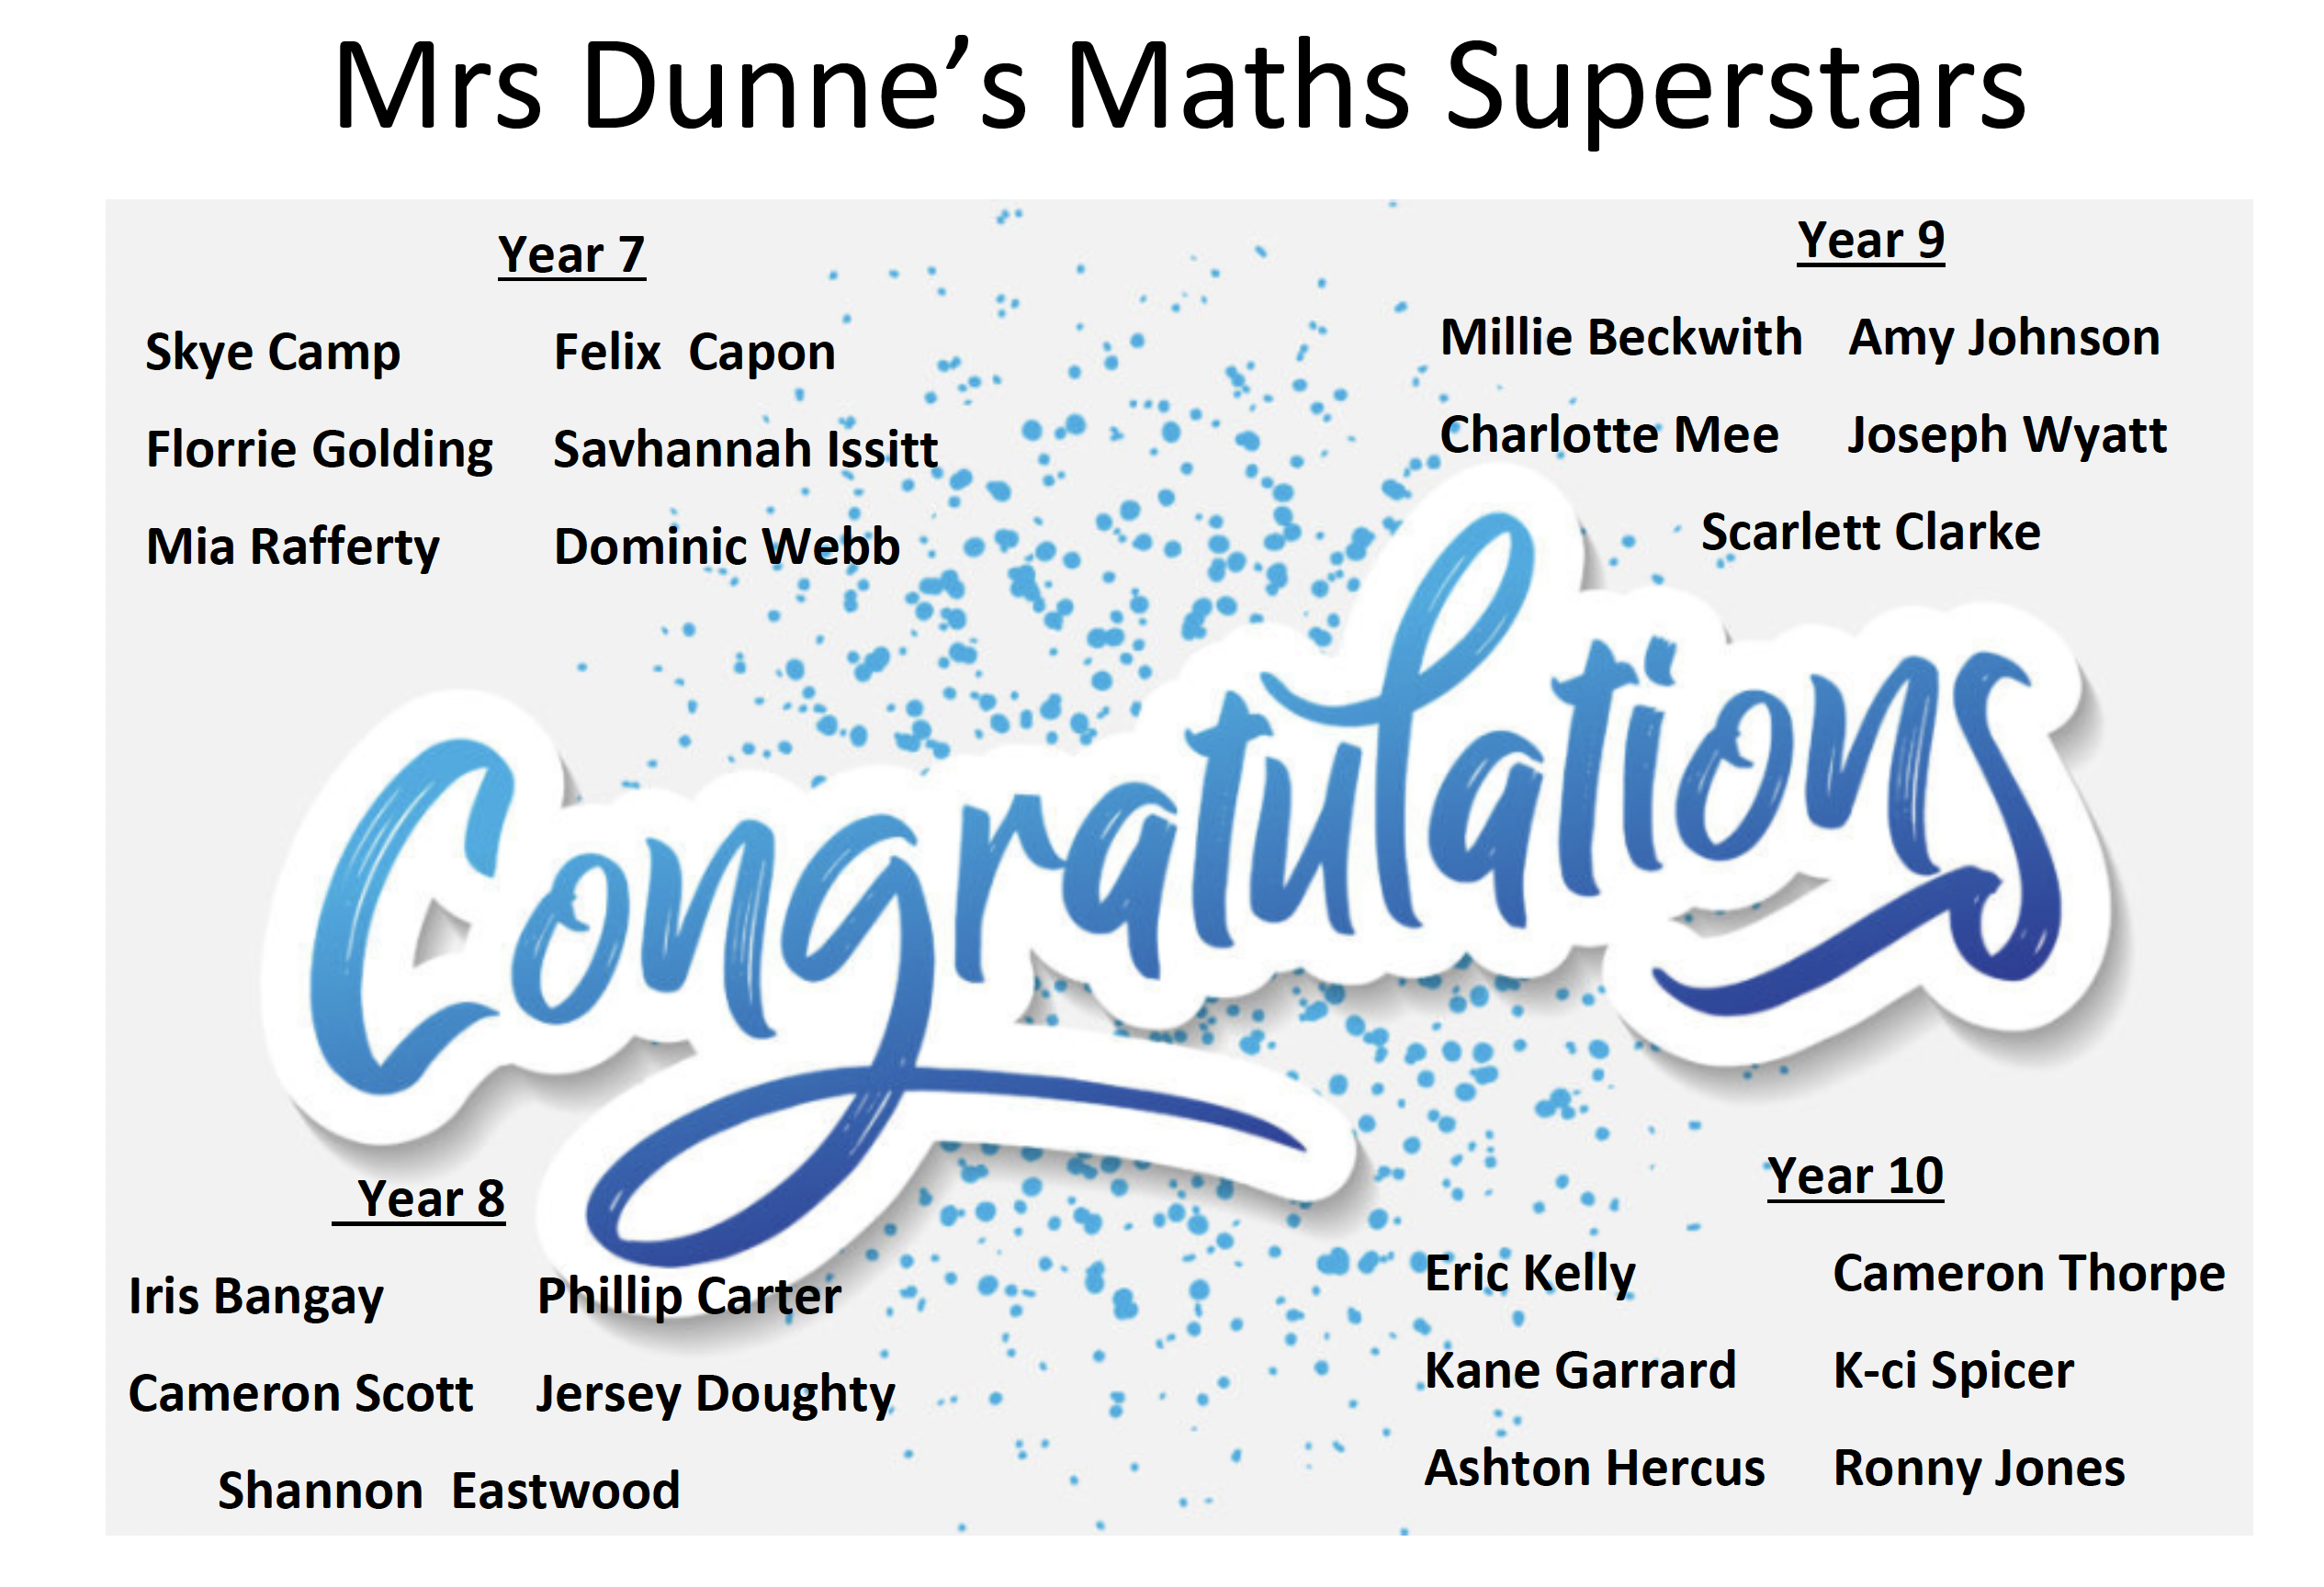 27/04/20 - Congratulations from Mrs Dunne